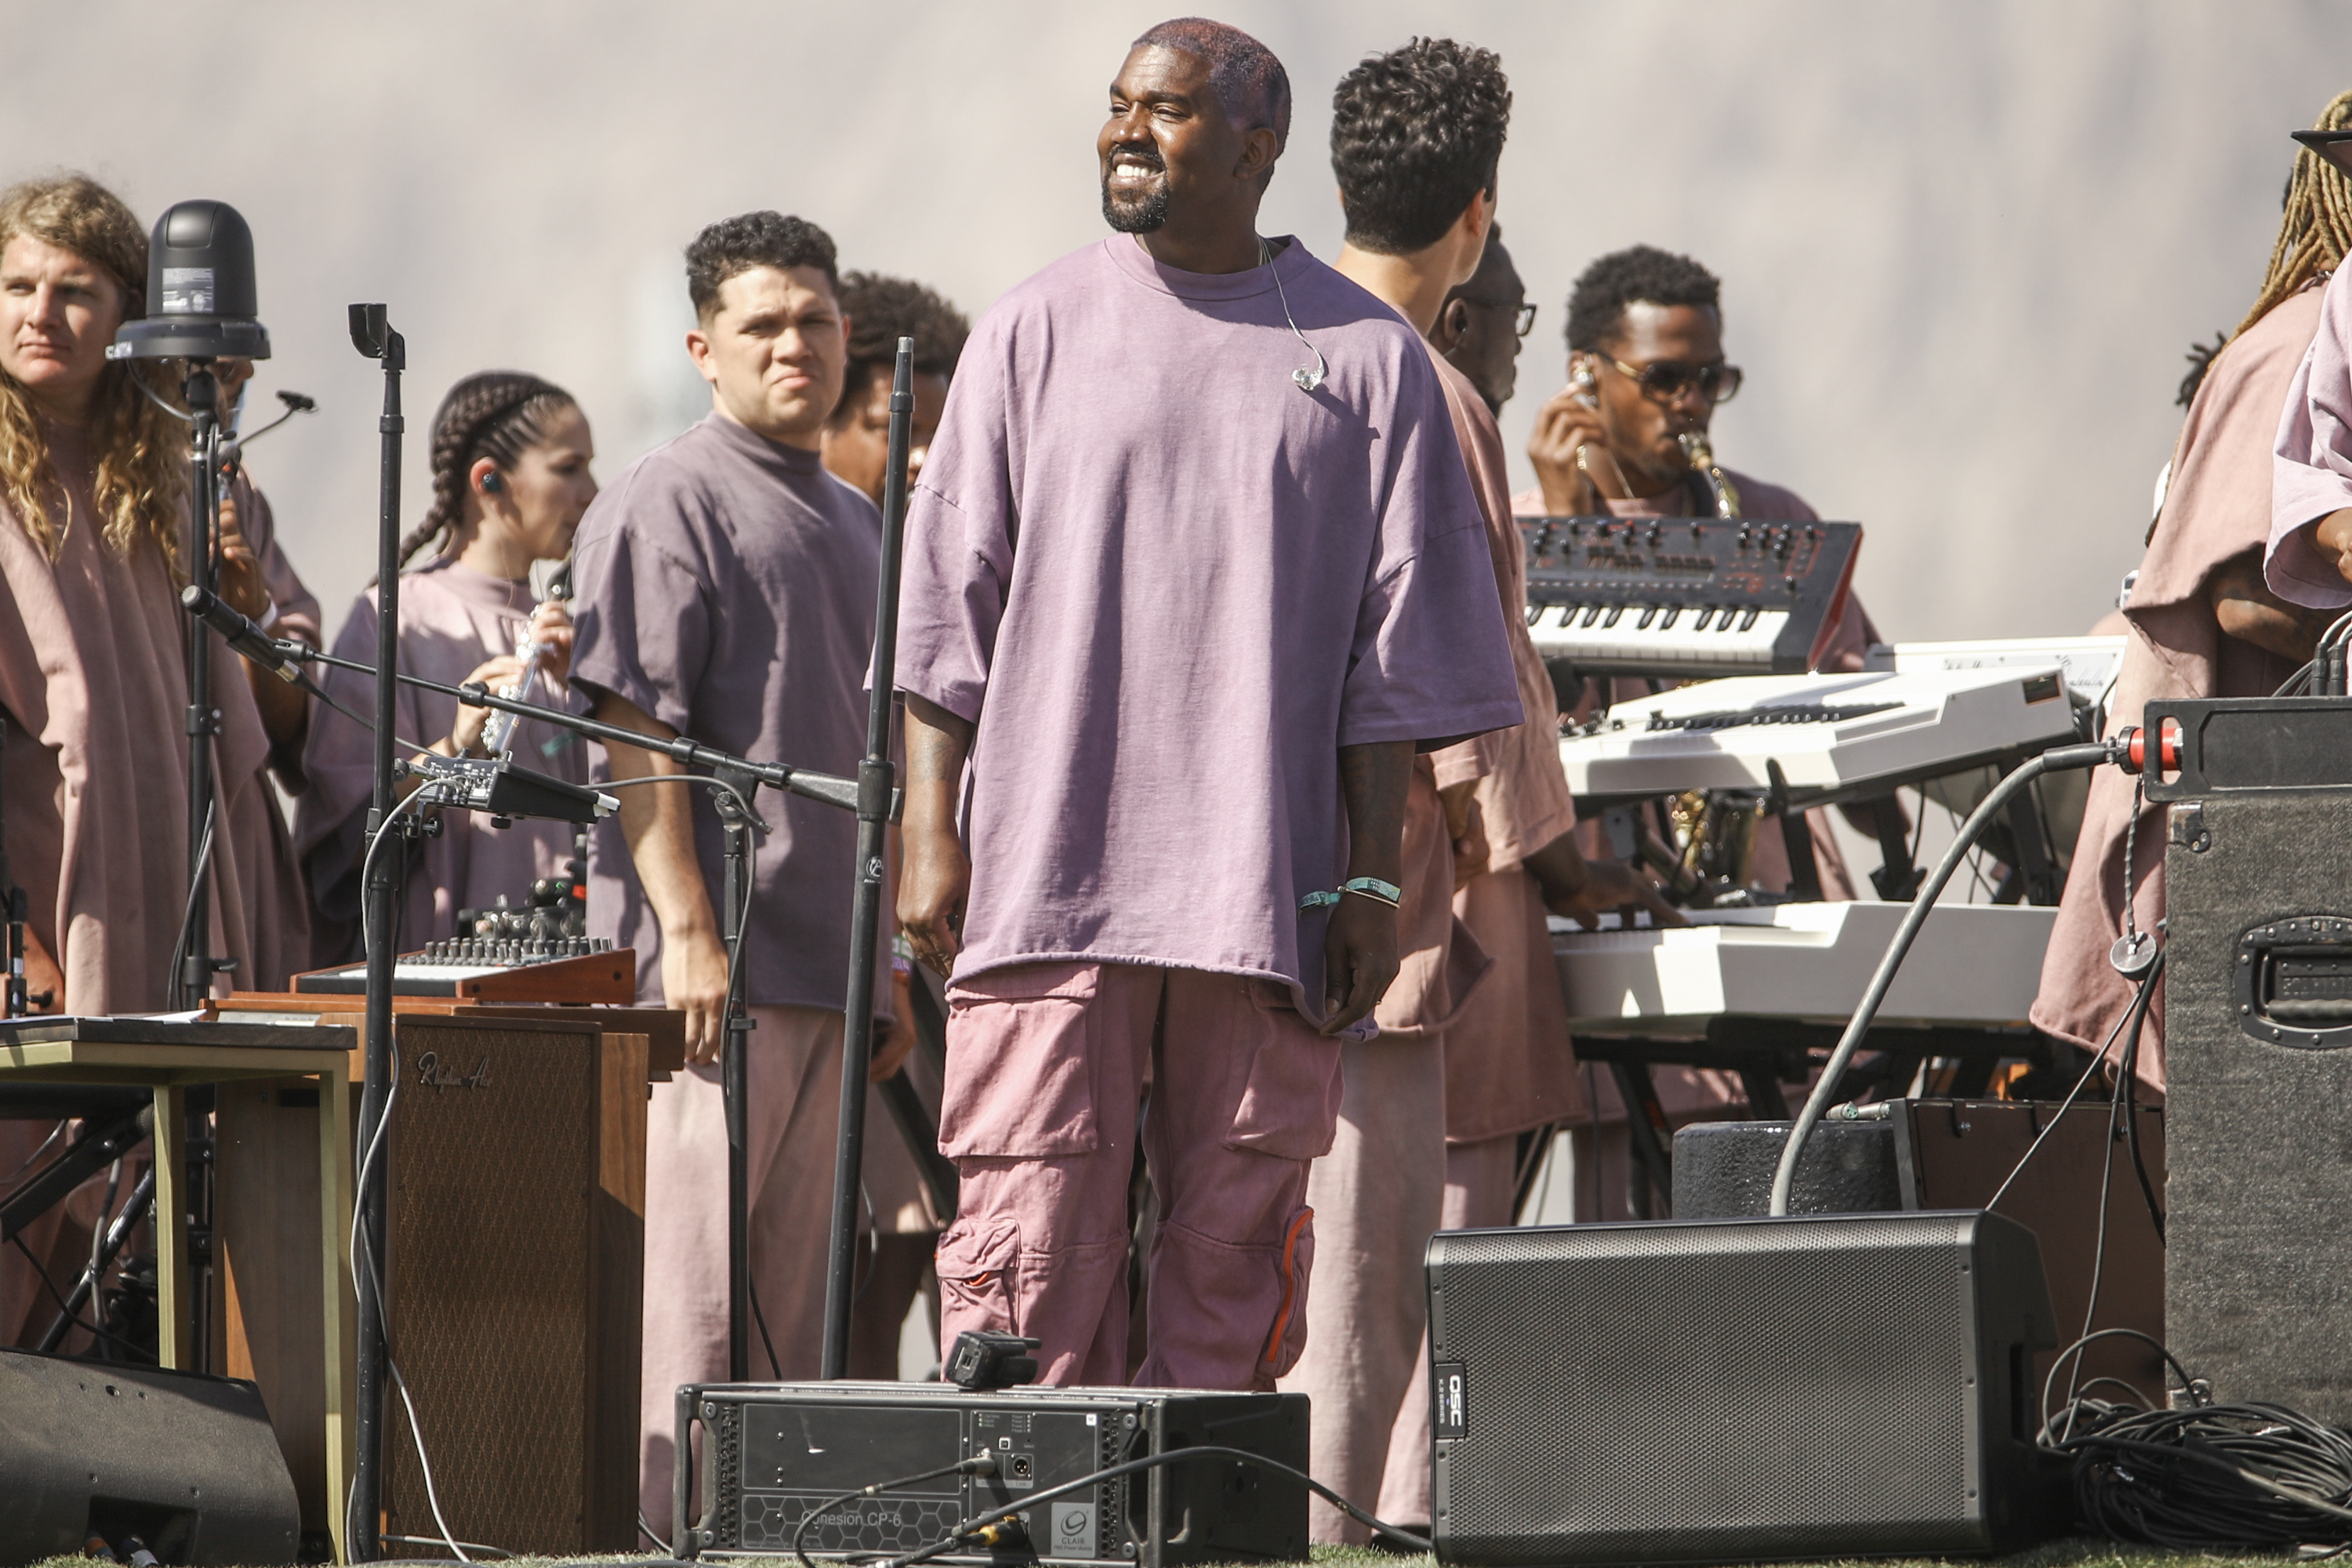 Kanye West performs Sunday Service during the 2019 Coachella Valley Music And Arts Festival on April 21, 2019 in Indio, California. (Photo by Rich Fury/Getty Images for Coachella)